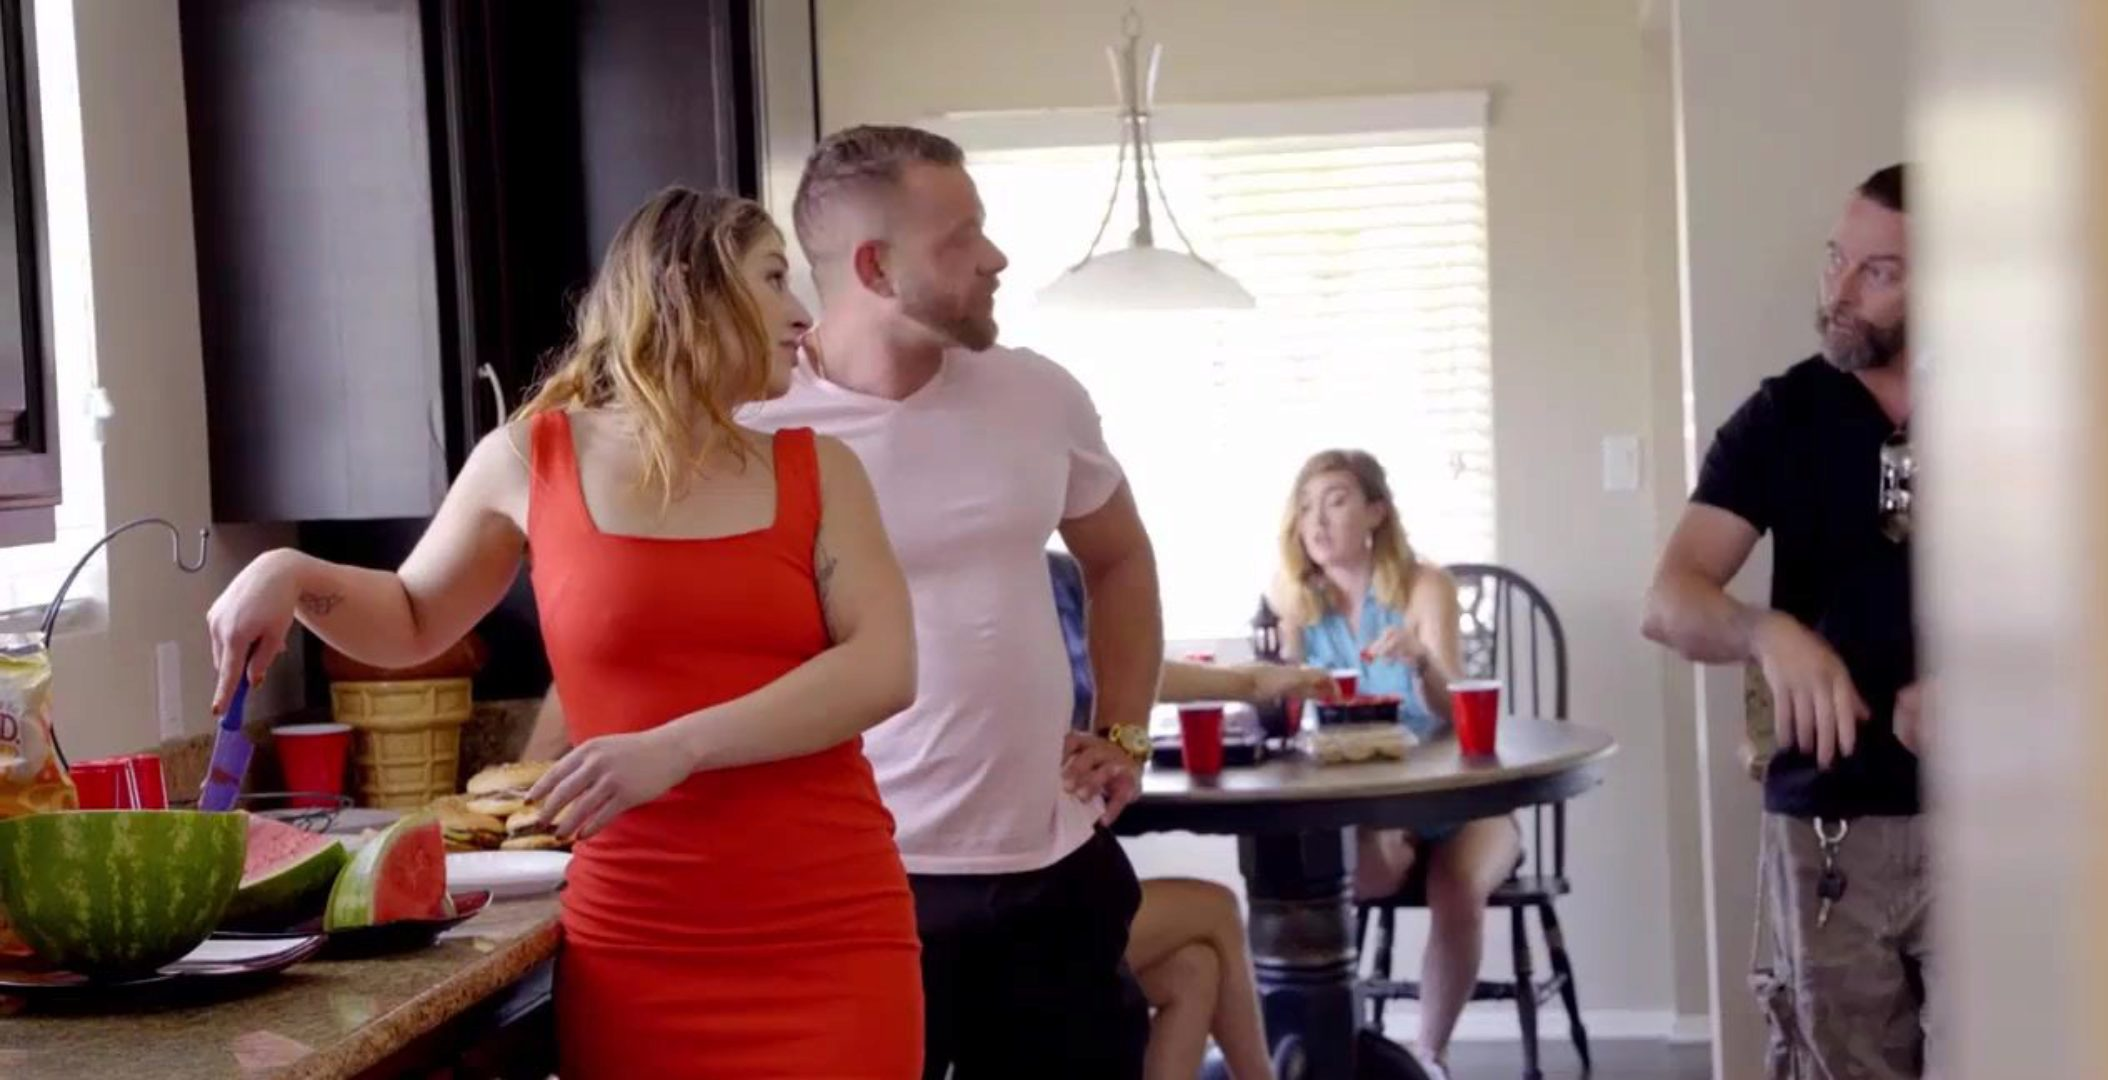 Stepdad Ass-Fucks Bratty Stepdaughter In Front Of The Guests (Whitney Wright)